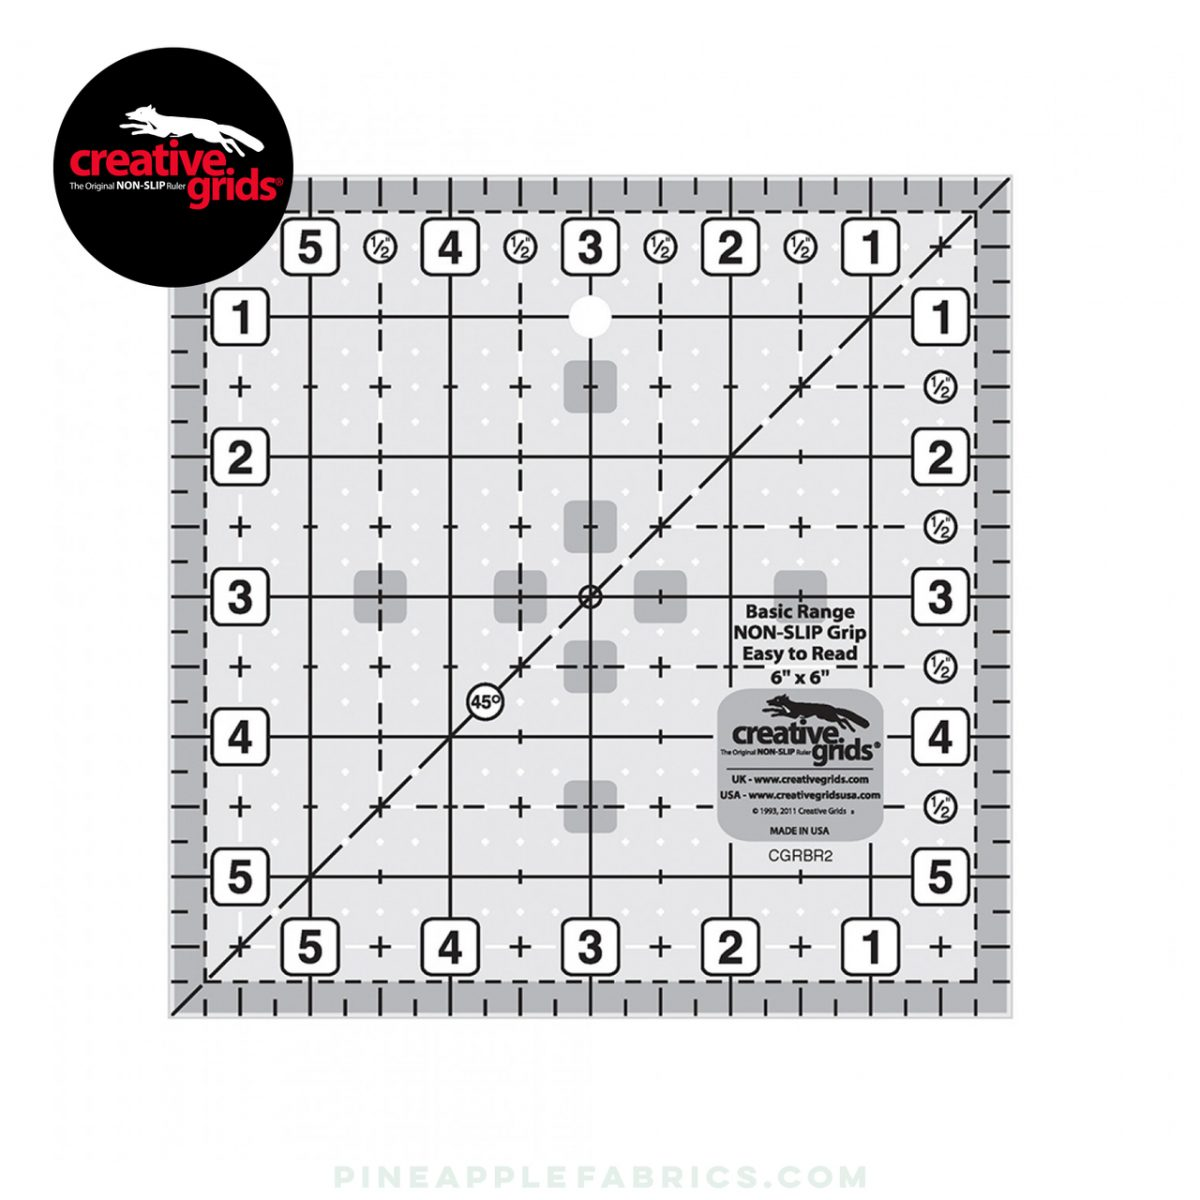 CGRBR2 - Creative Grids Basic Range 6in Square